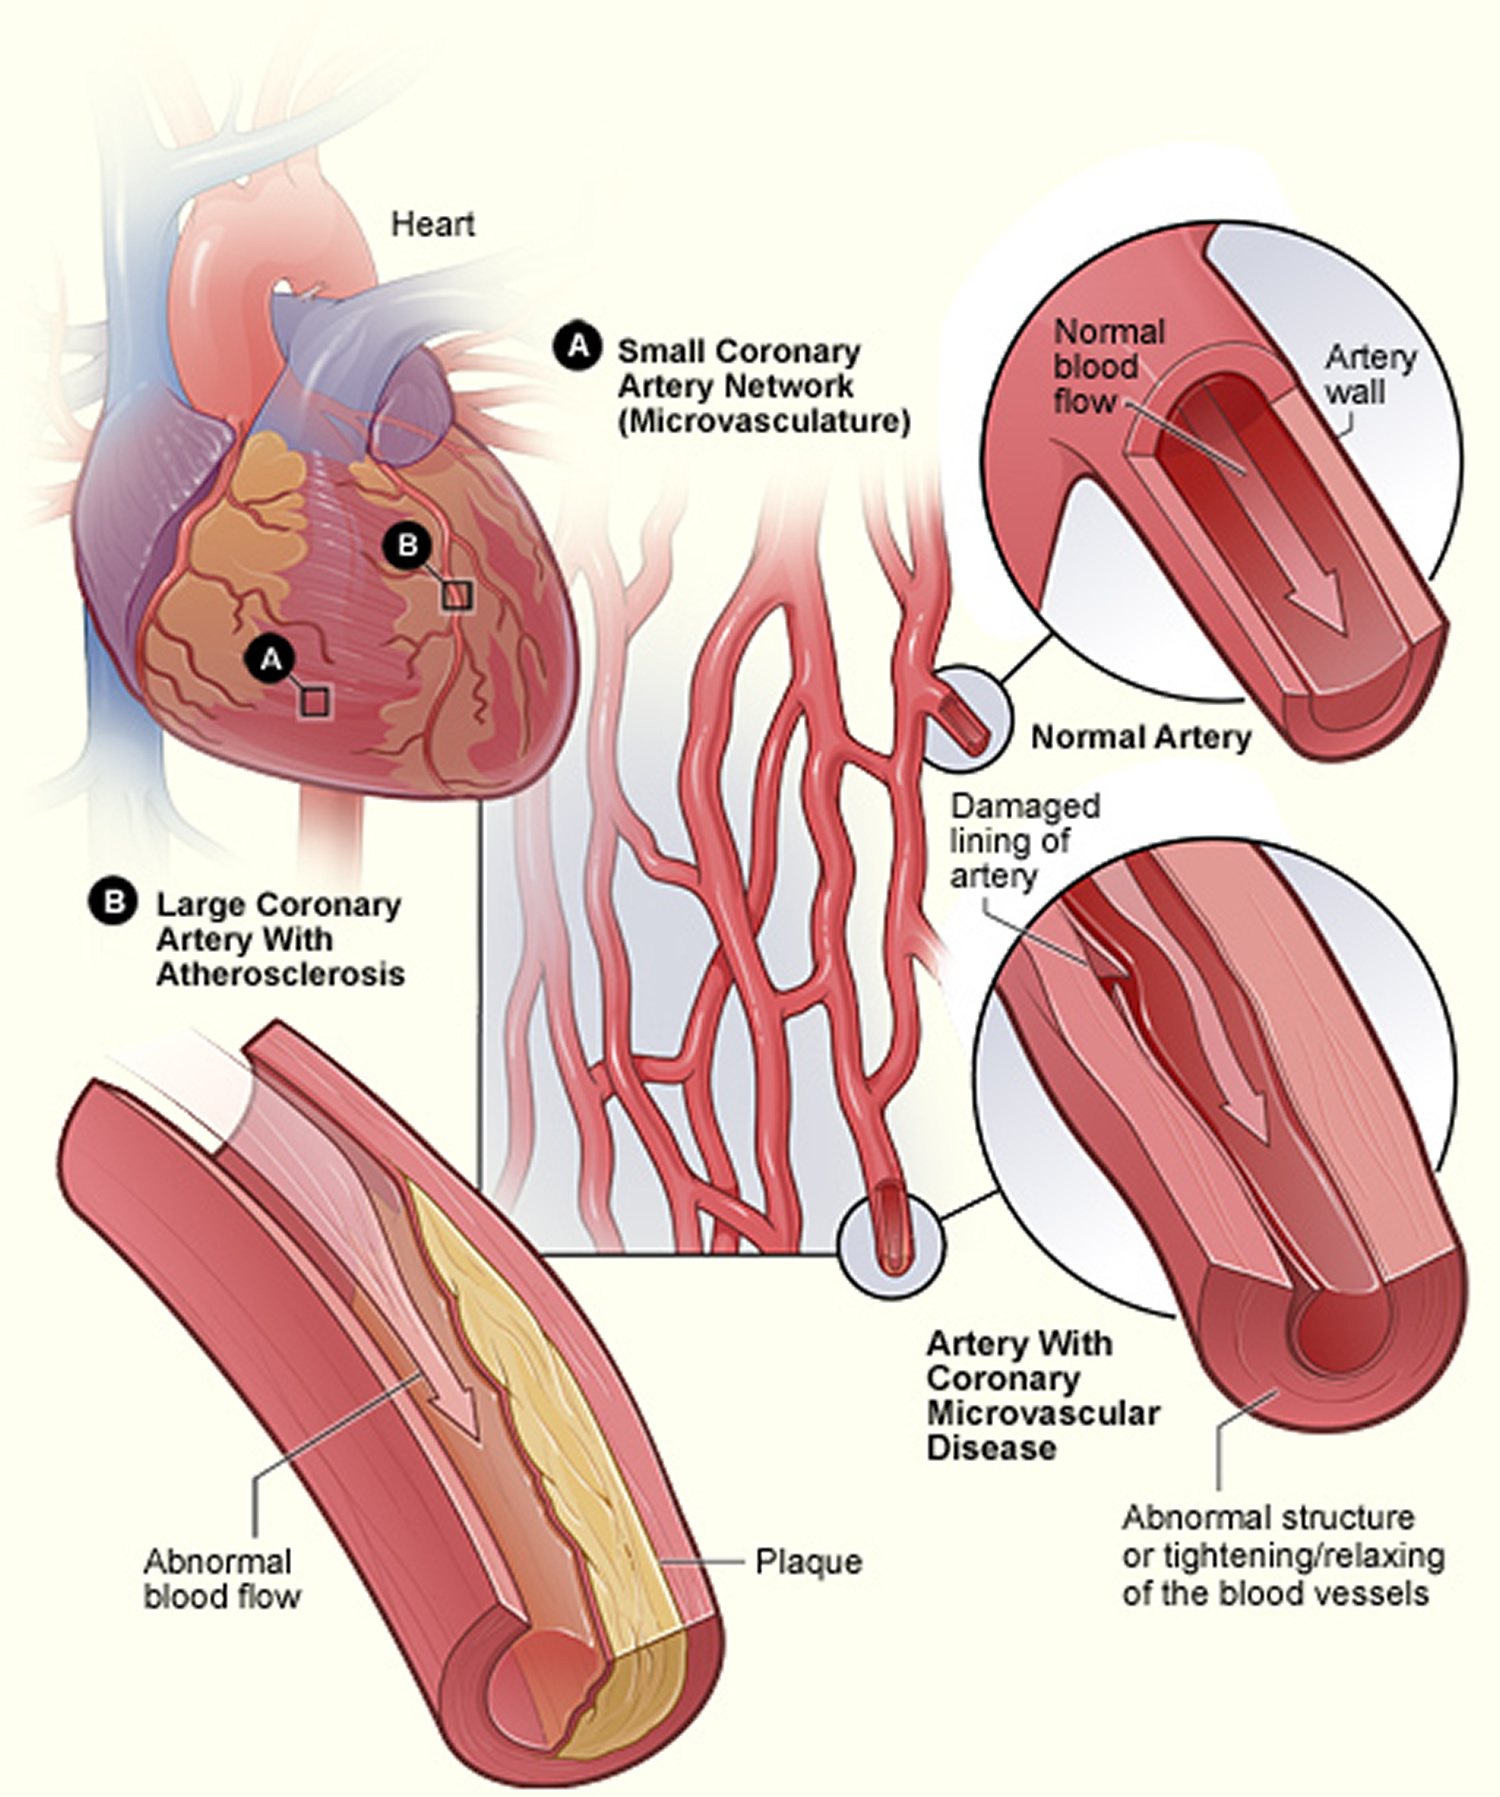 Coronary Microvascular Disease